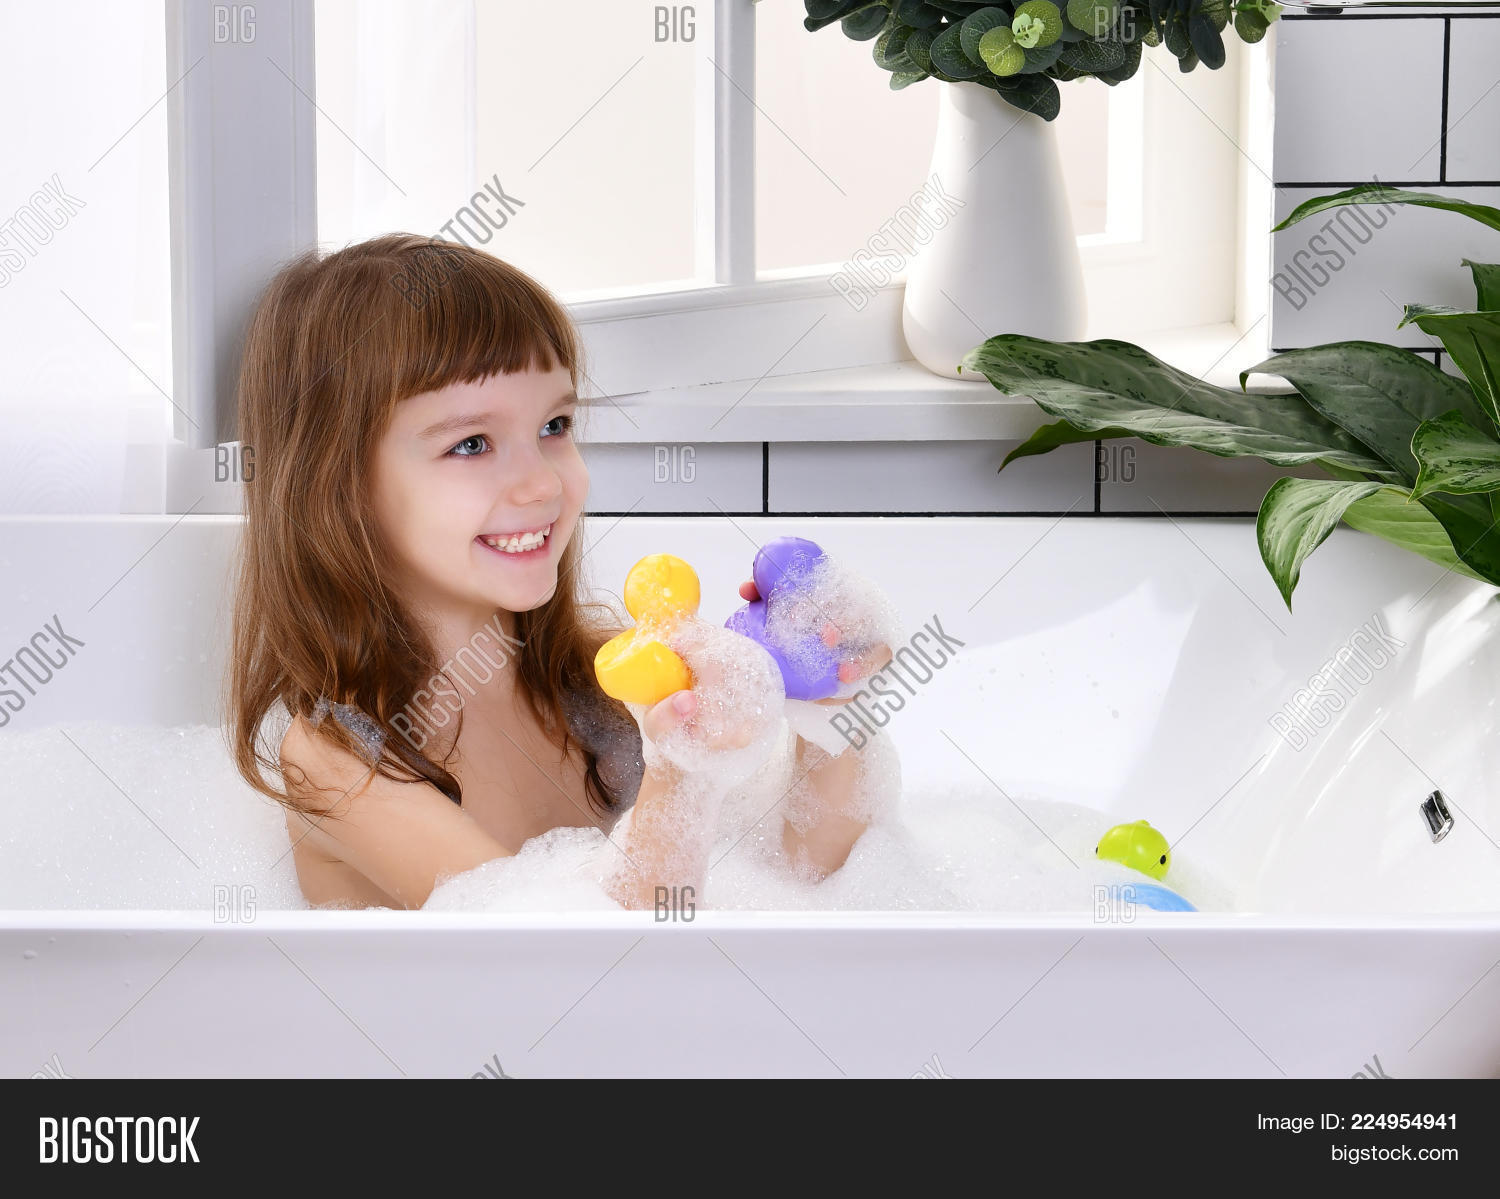 Happy Little Baby Girl Image & Photo (Free Trial) | Bigstock